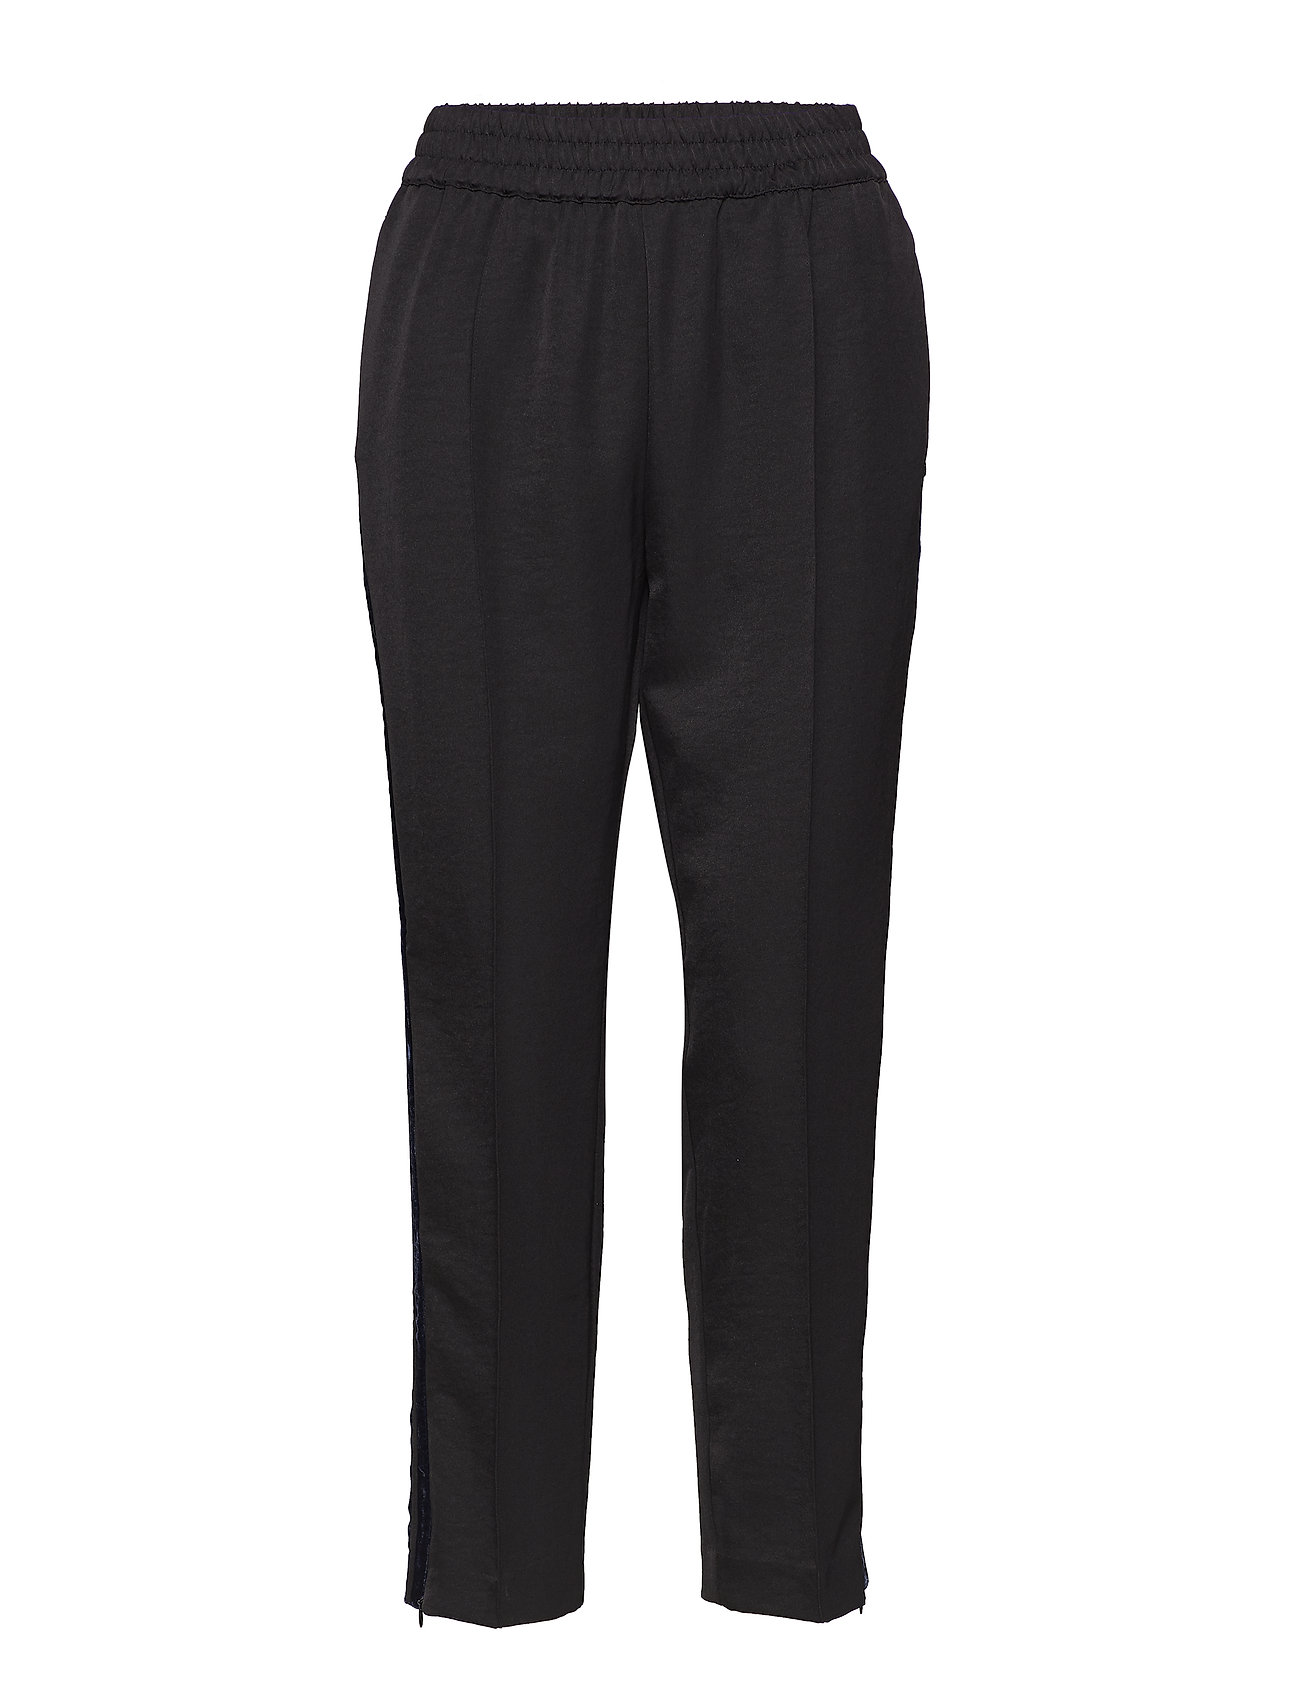 Scotch & Soda Tailored pants with velvet side tapes - BLACK